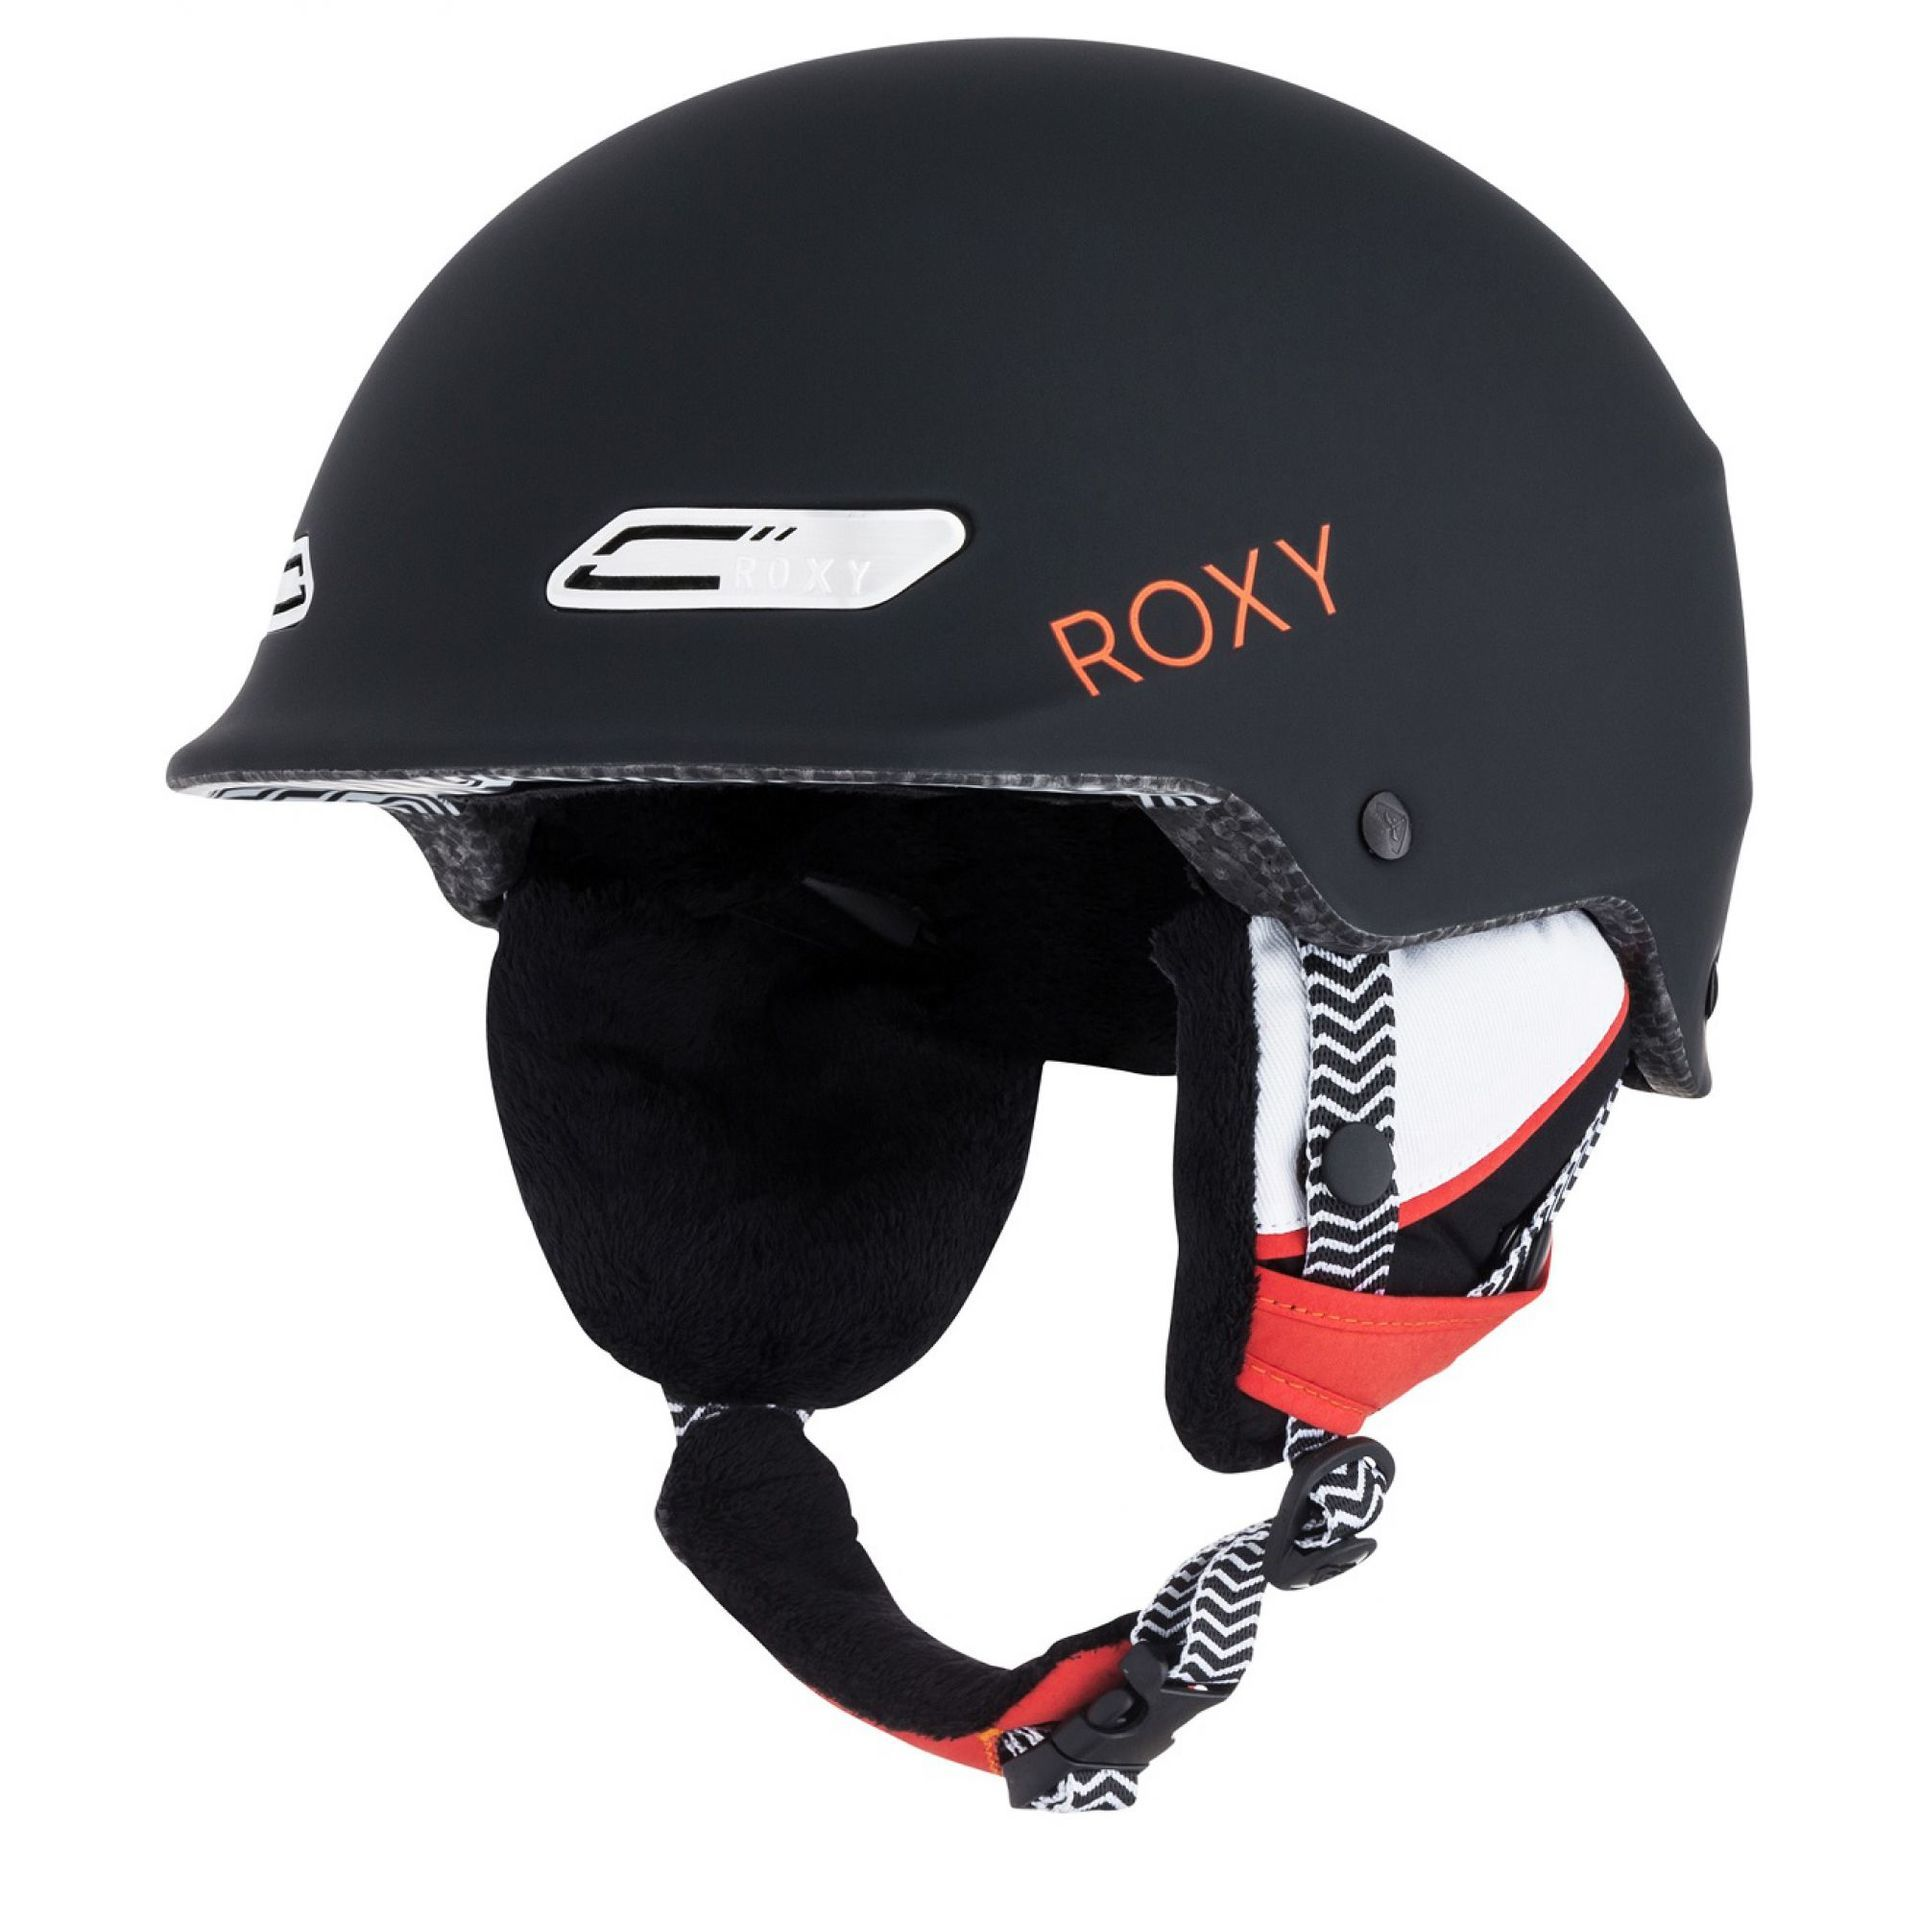 KASK ROXY POWER POWDER CZARNY